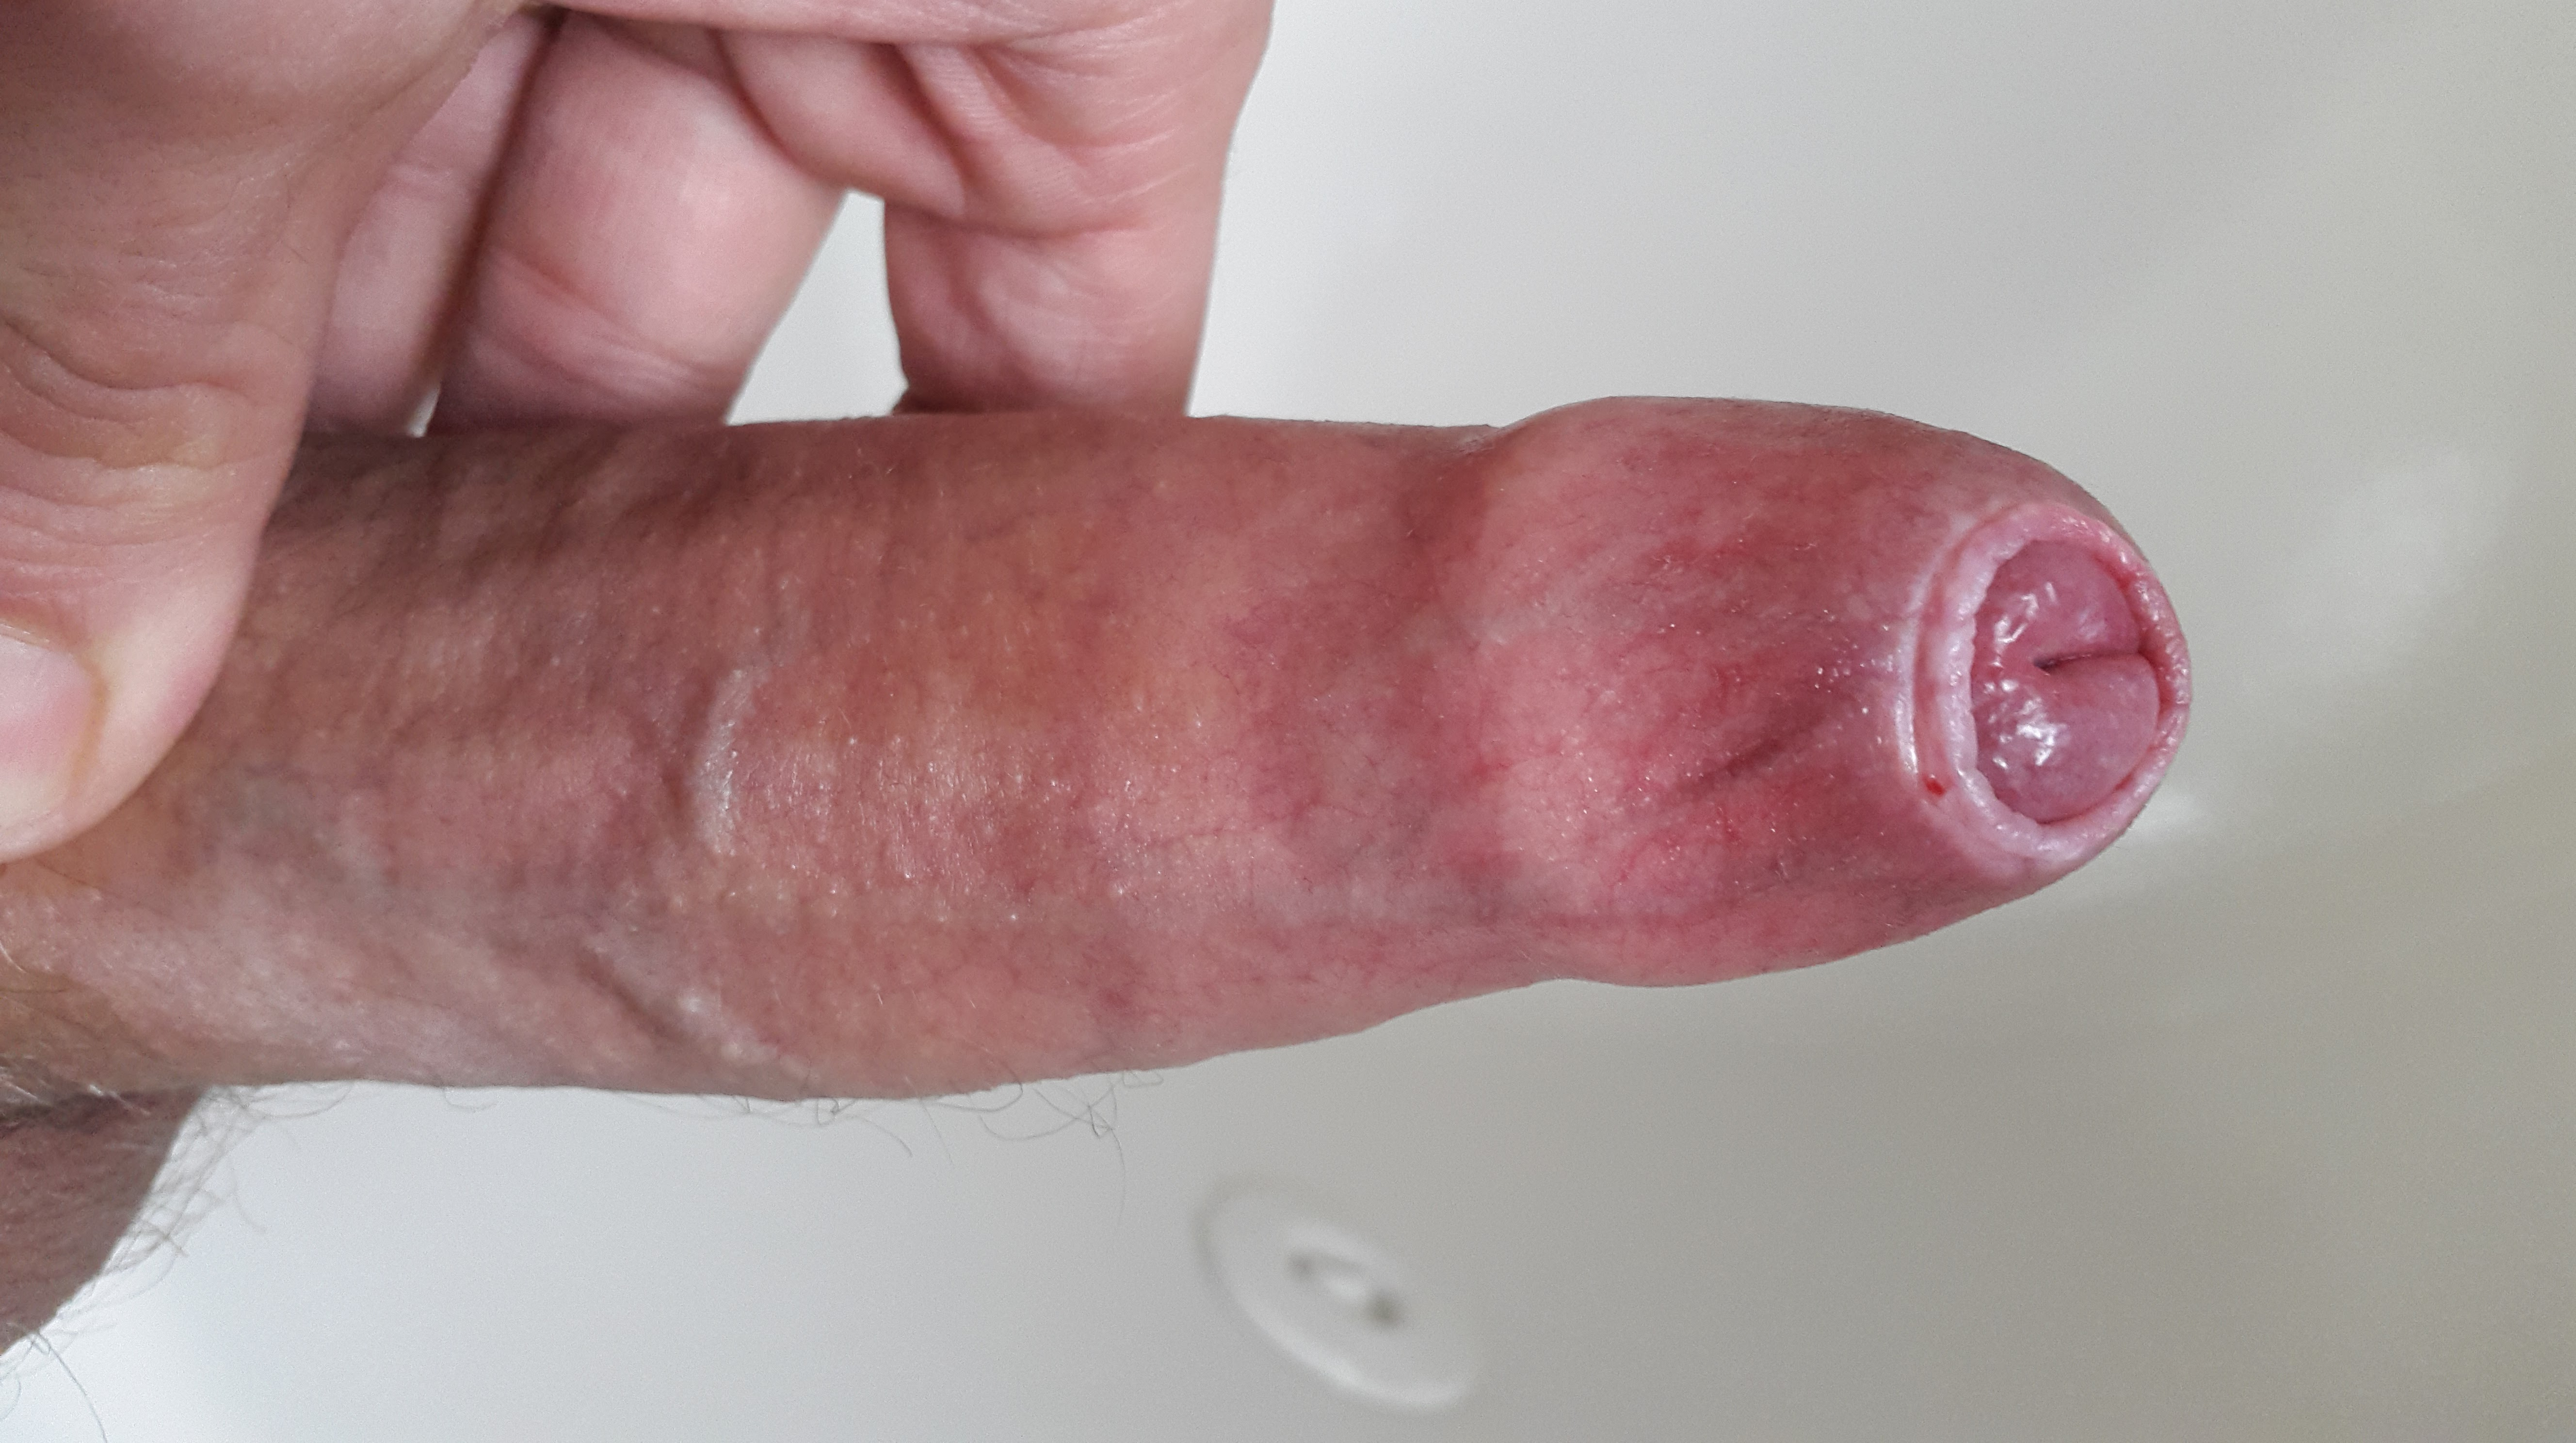 Penis with phimosis, phimotic ring visible